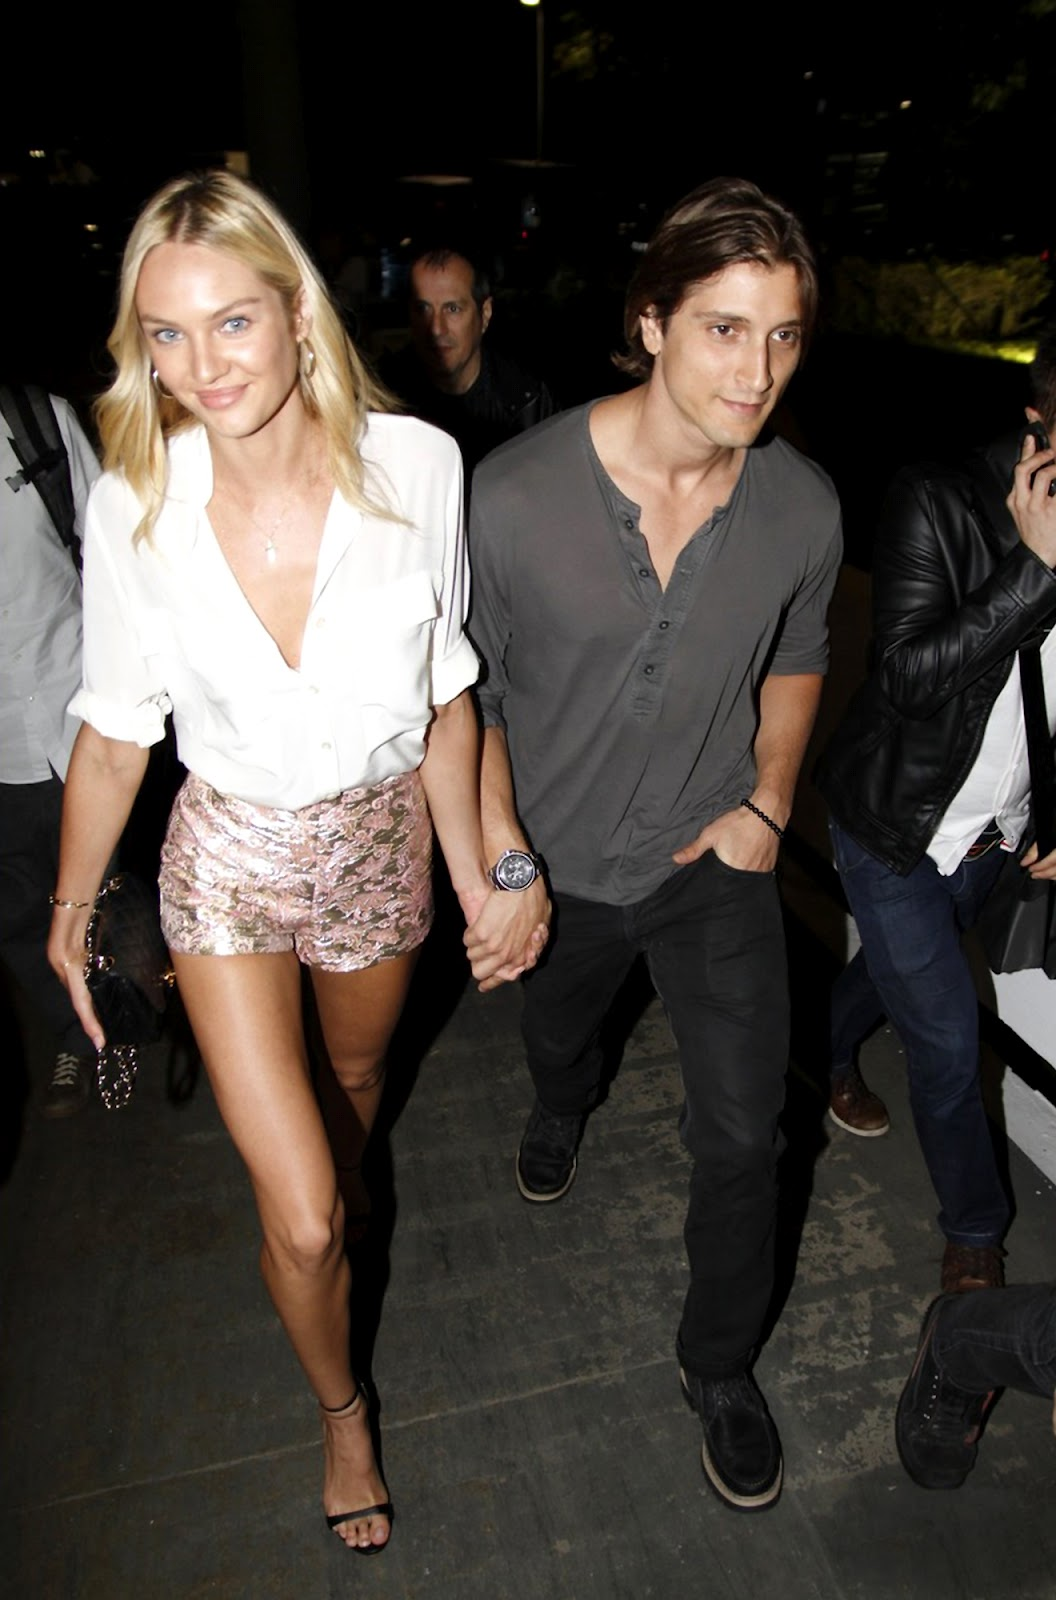 candice swanepoel and hermann nicoli relationship tips